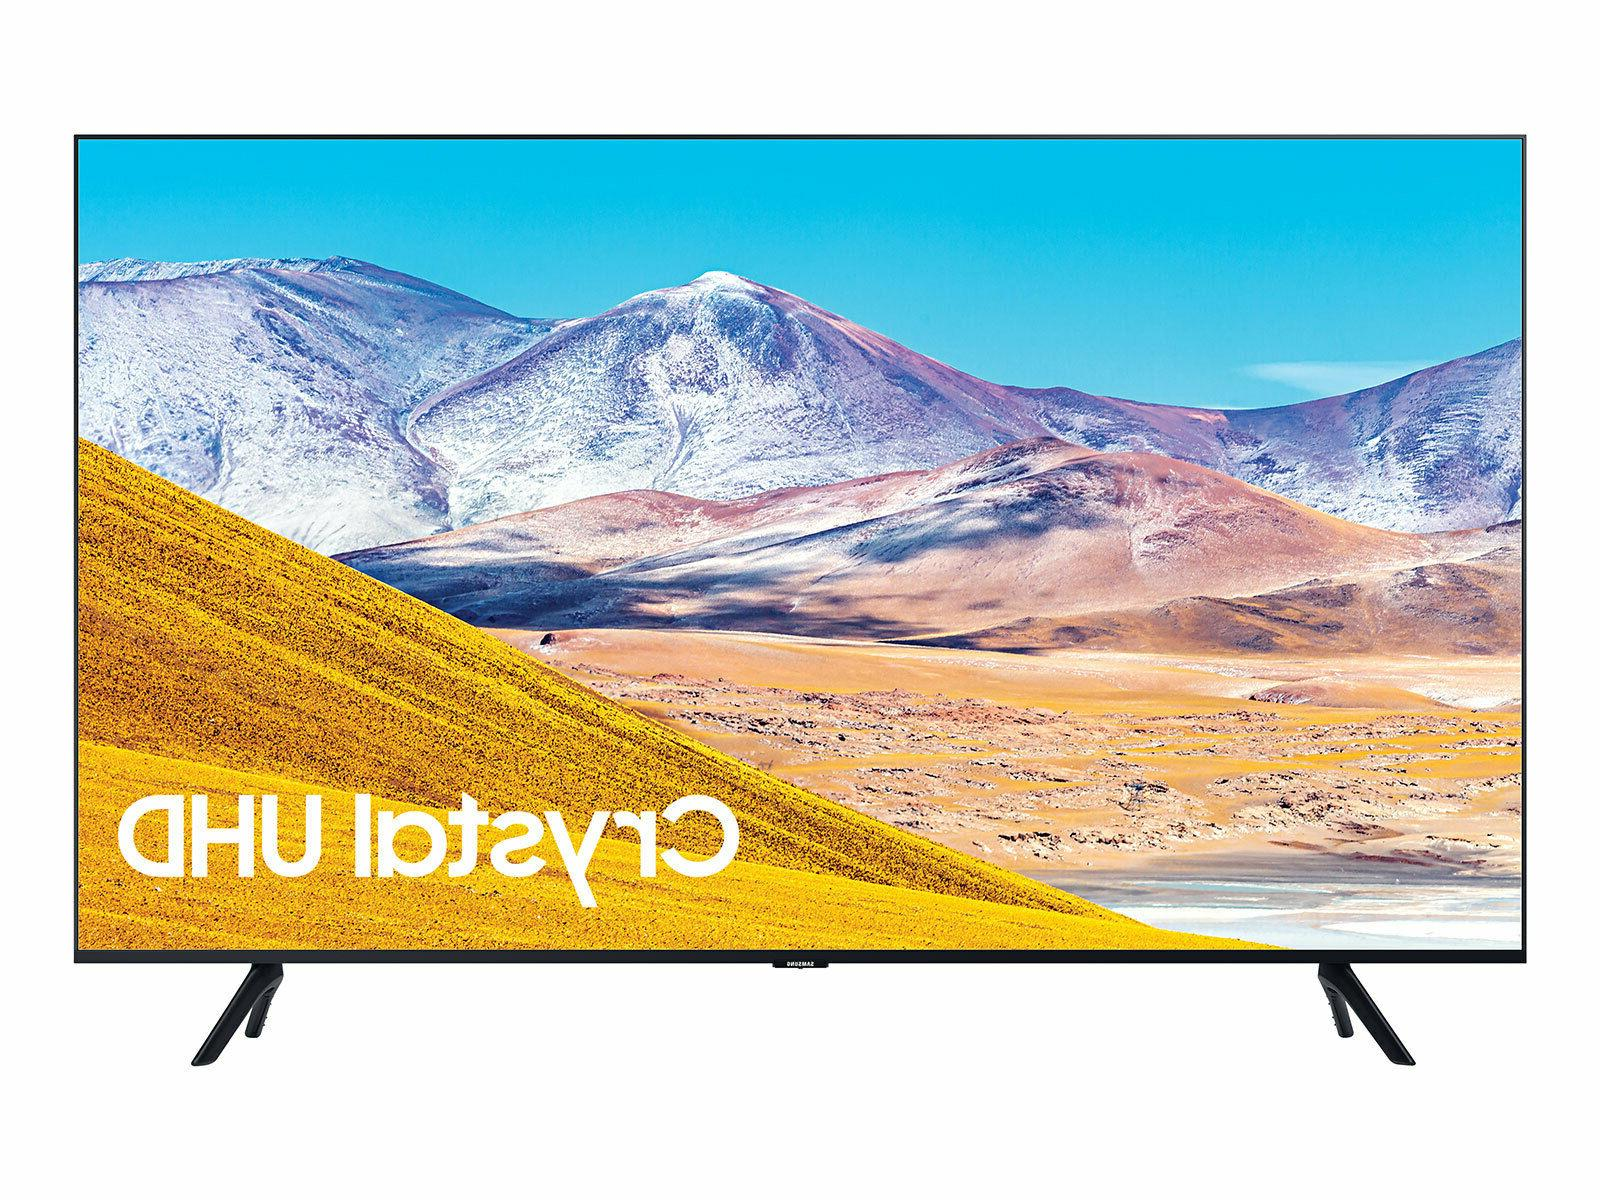 Samsung - Class - 8 Series - 4K UHD - Smart - LED - with HDR